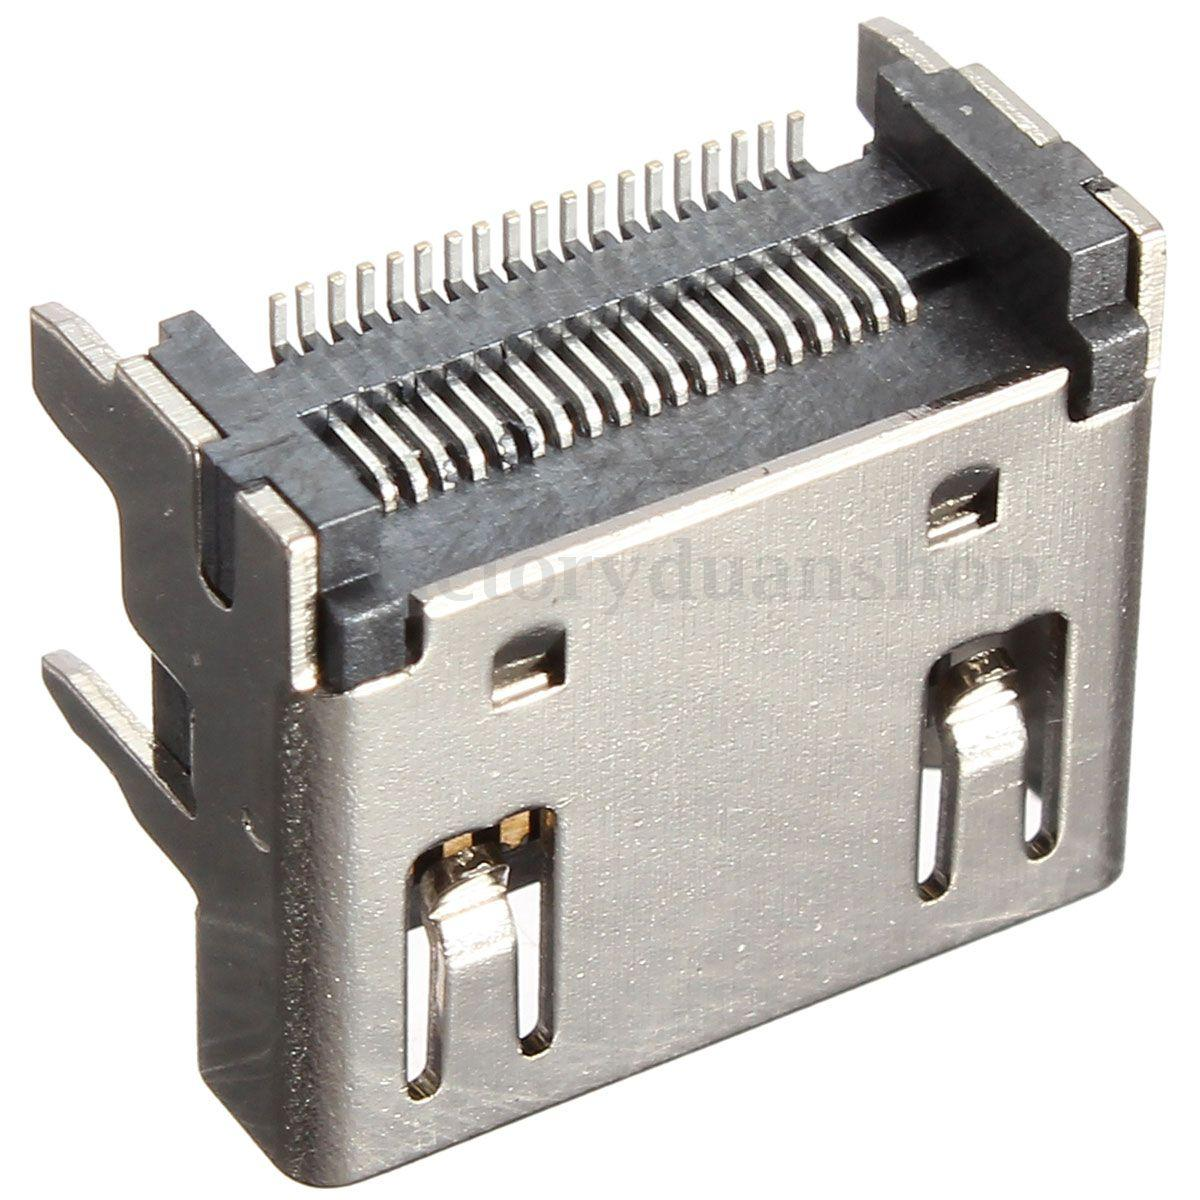 hight resolution of hdmi female connector